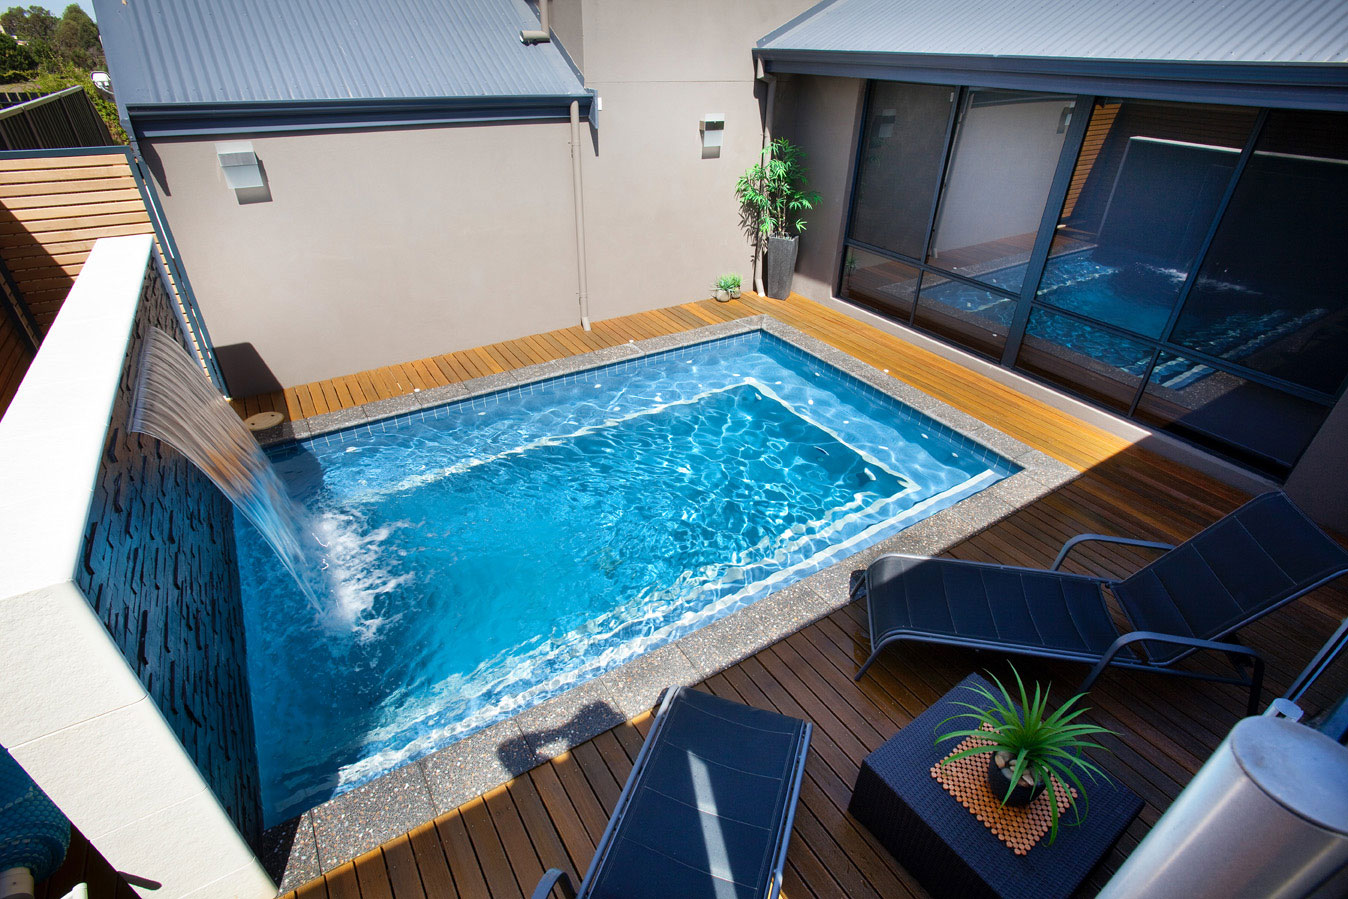 Angelic Design of Small Deck Ideas With Rectangular Swimming Pool